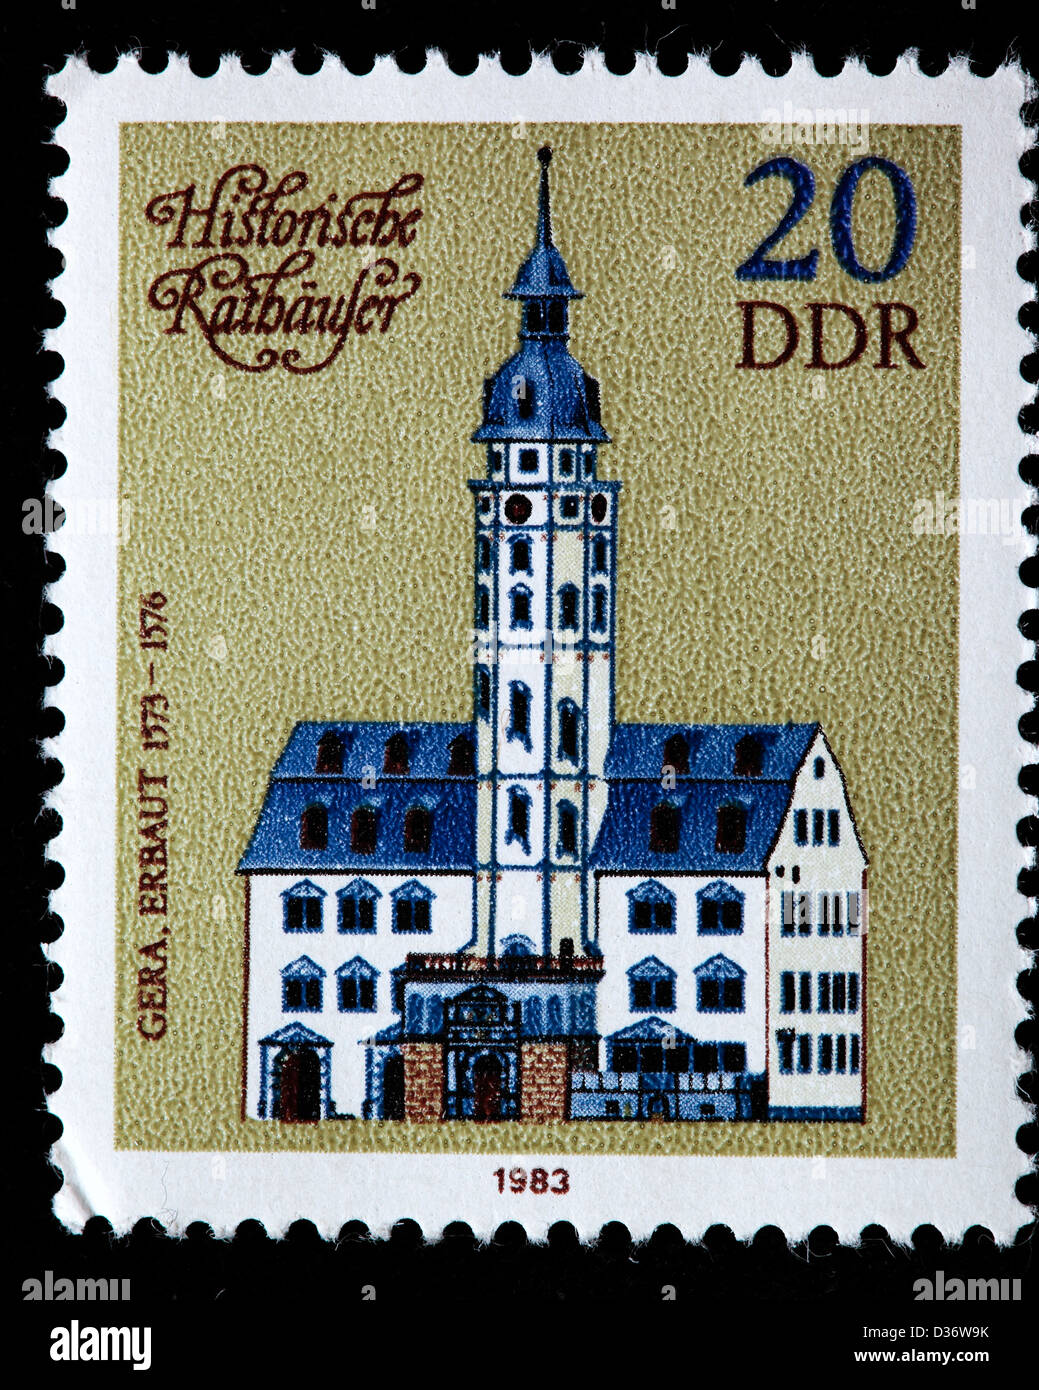 Town Hall (1576), Gera, Thuringia, postage stamp, Germany, 1983 Stock Photo